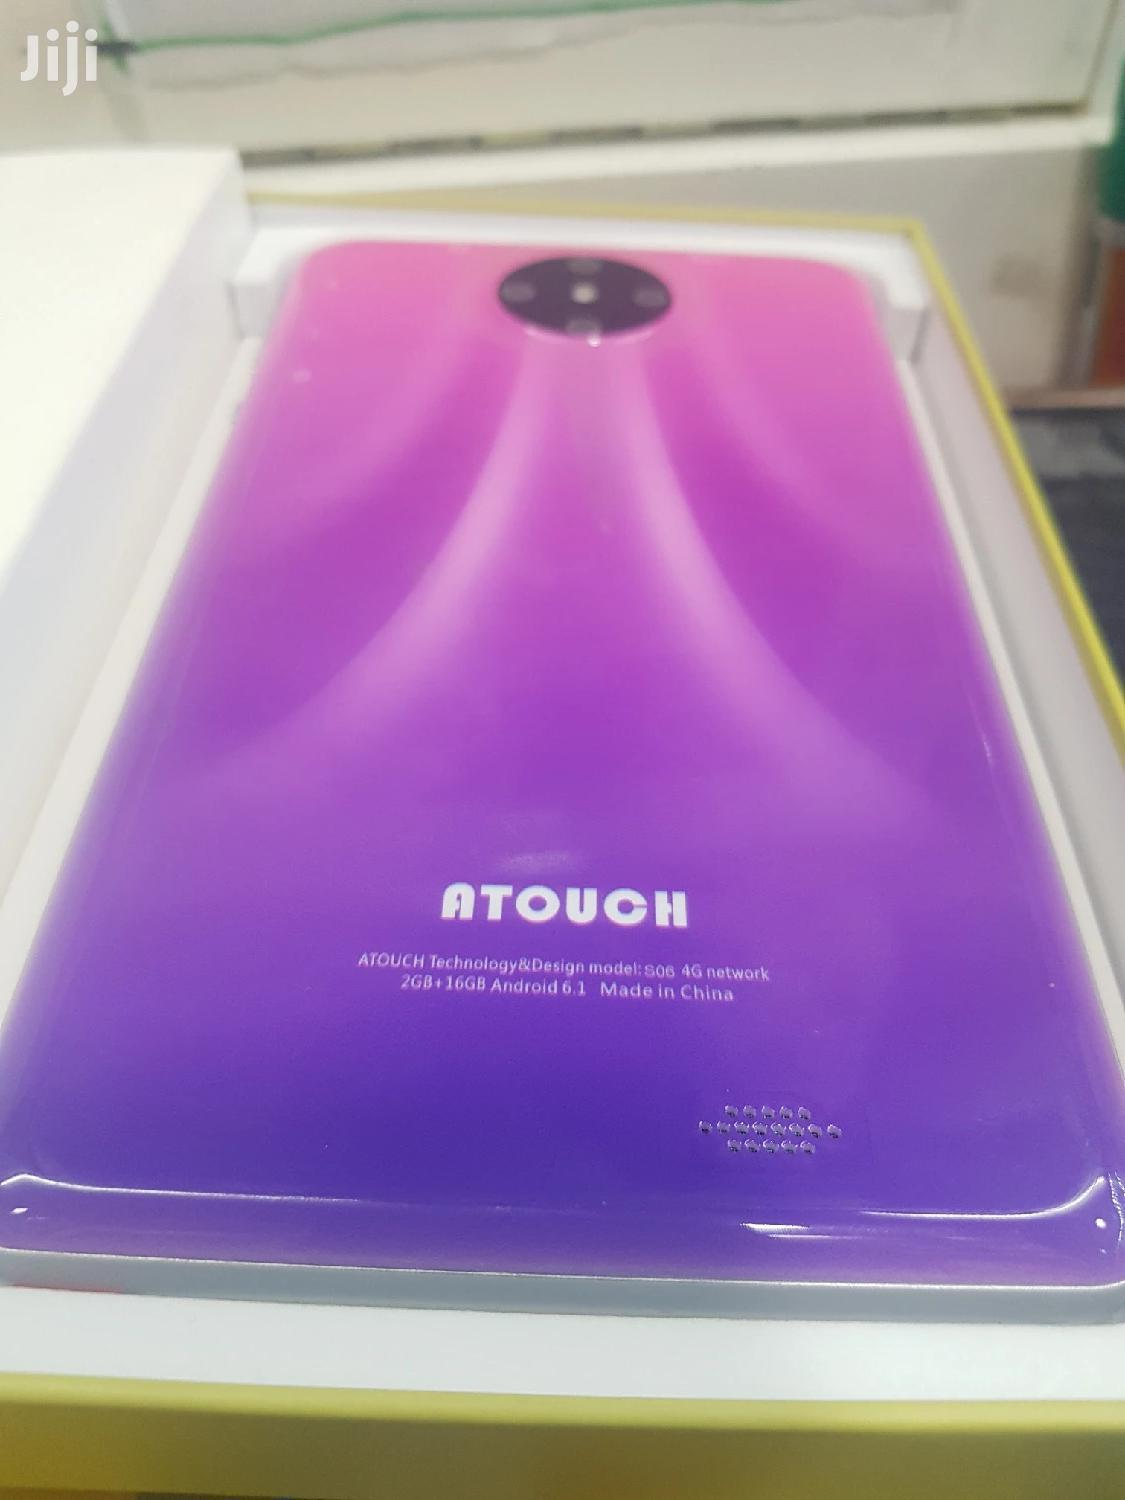 New Atouch S04 16 GB | Tablets for sale in Nairobi Central, Nairobi, Kenya